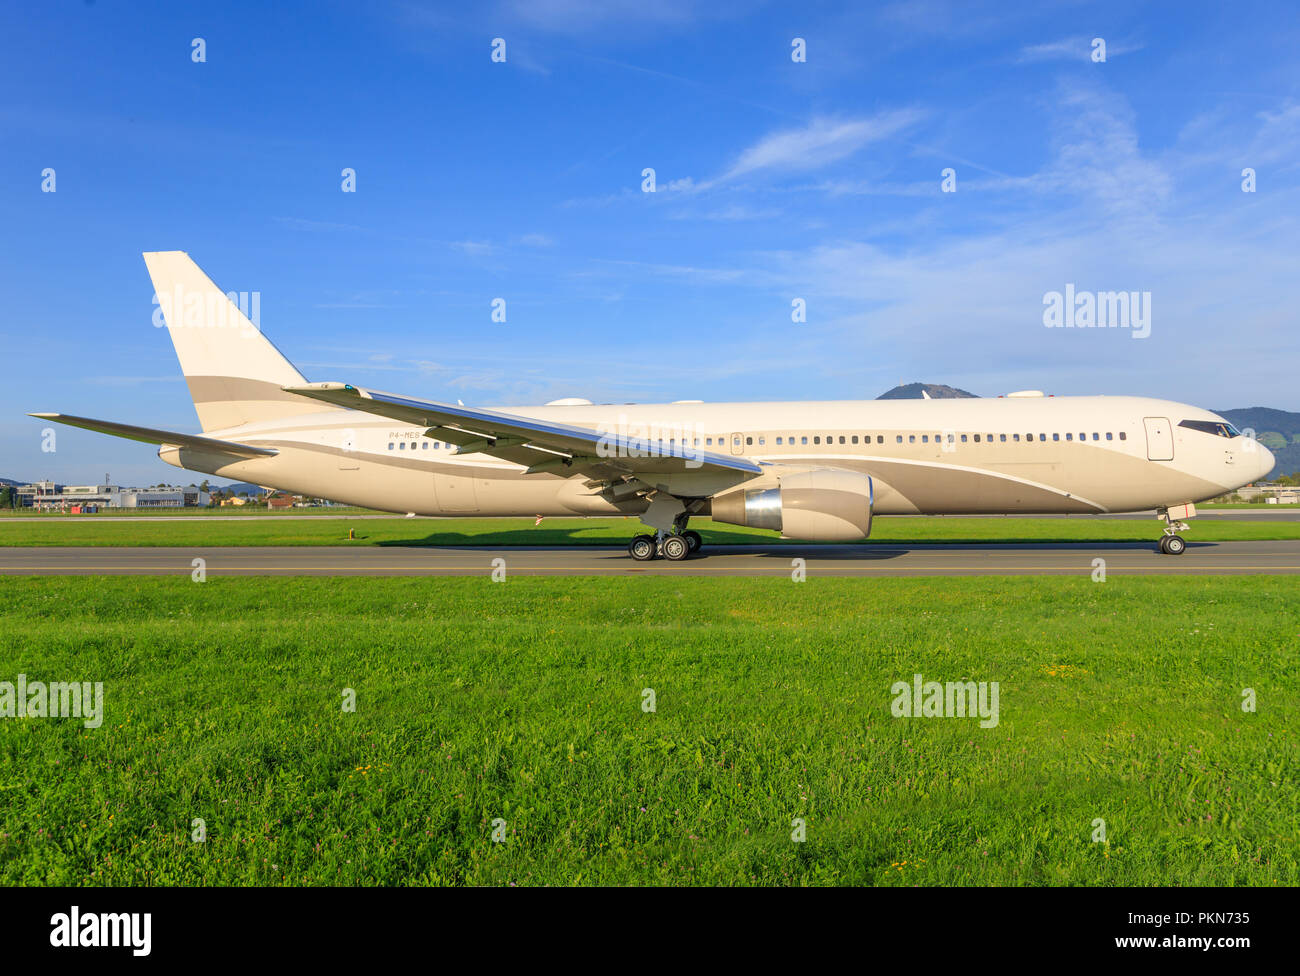 Salzburg/Germany March 10, 2018: Boeing 767 from Roman Abramowitsch - Stock Image